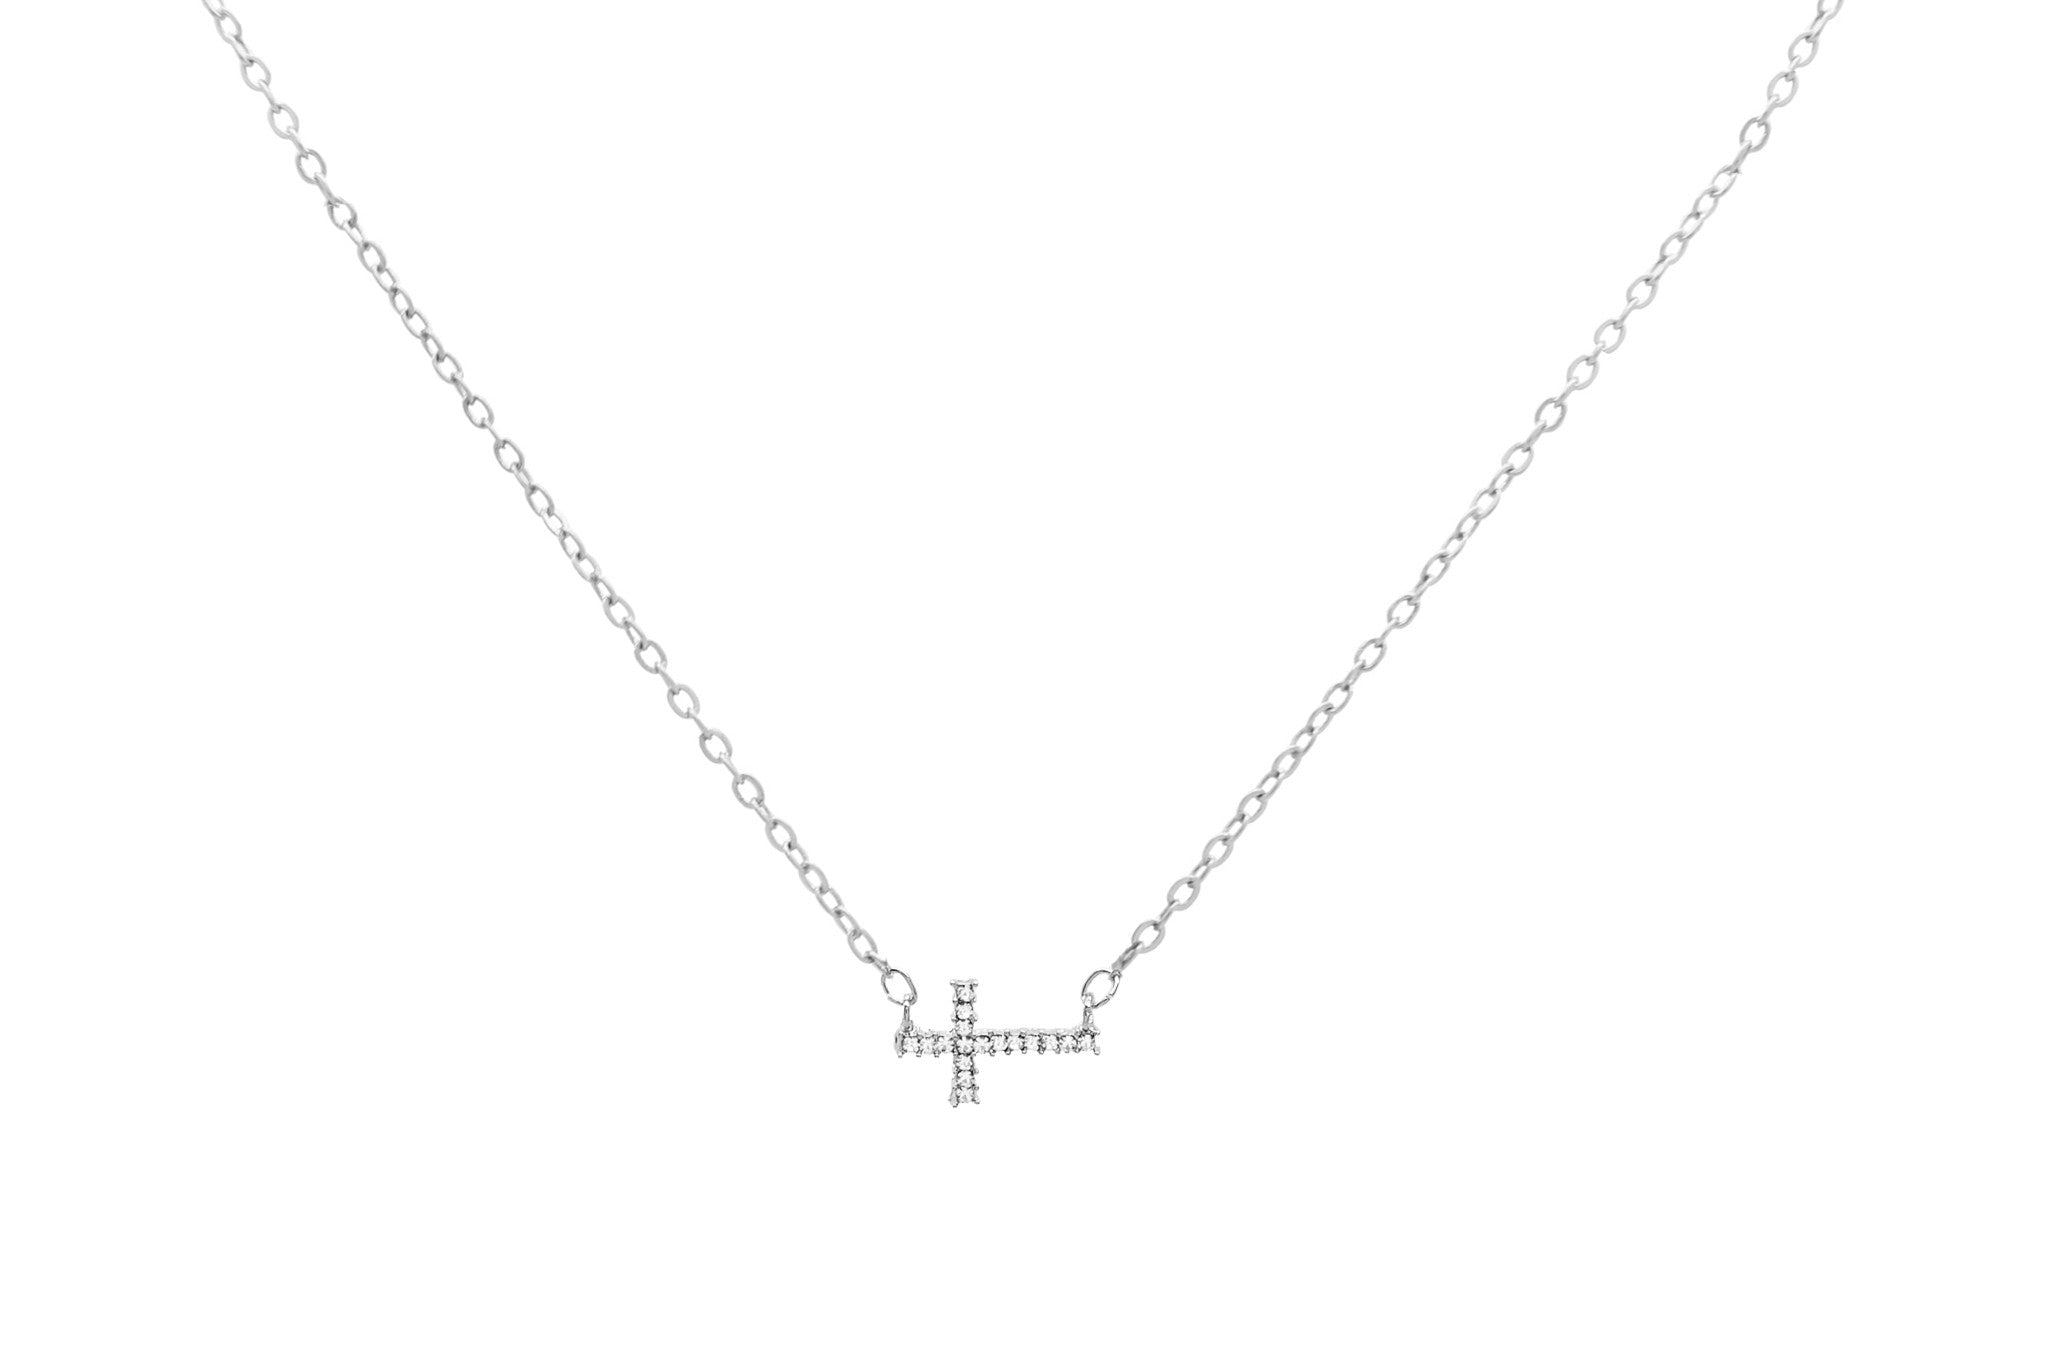 Lil Crystal Cross Necklace, Silver, Necklaces, Chic & Shine, Chic & Shine  - 4